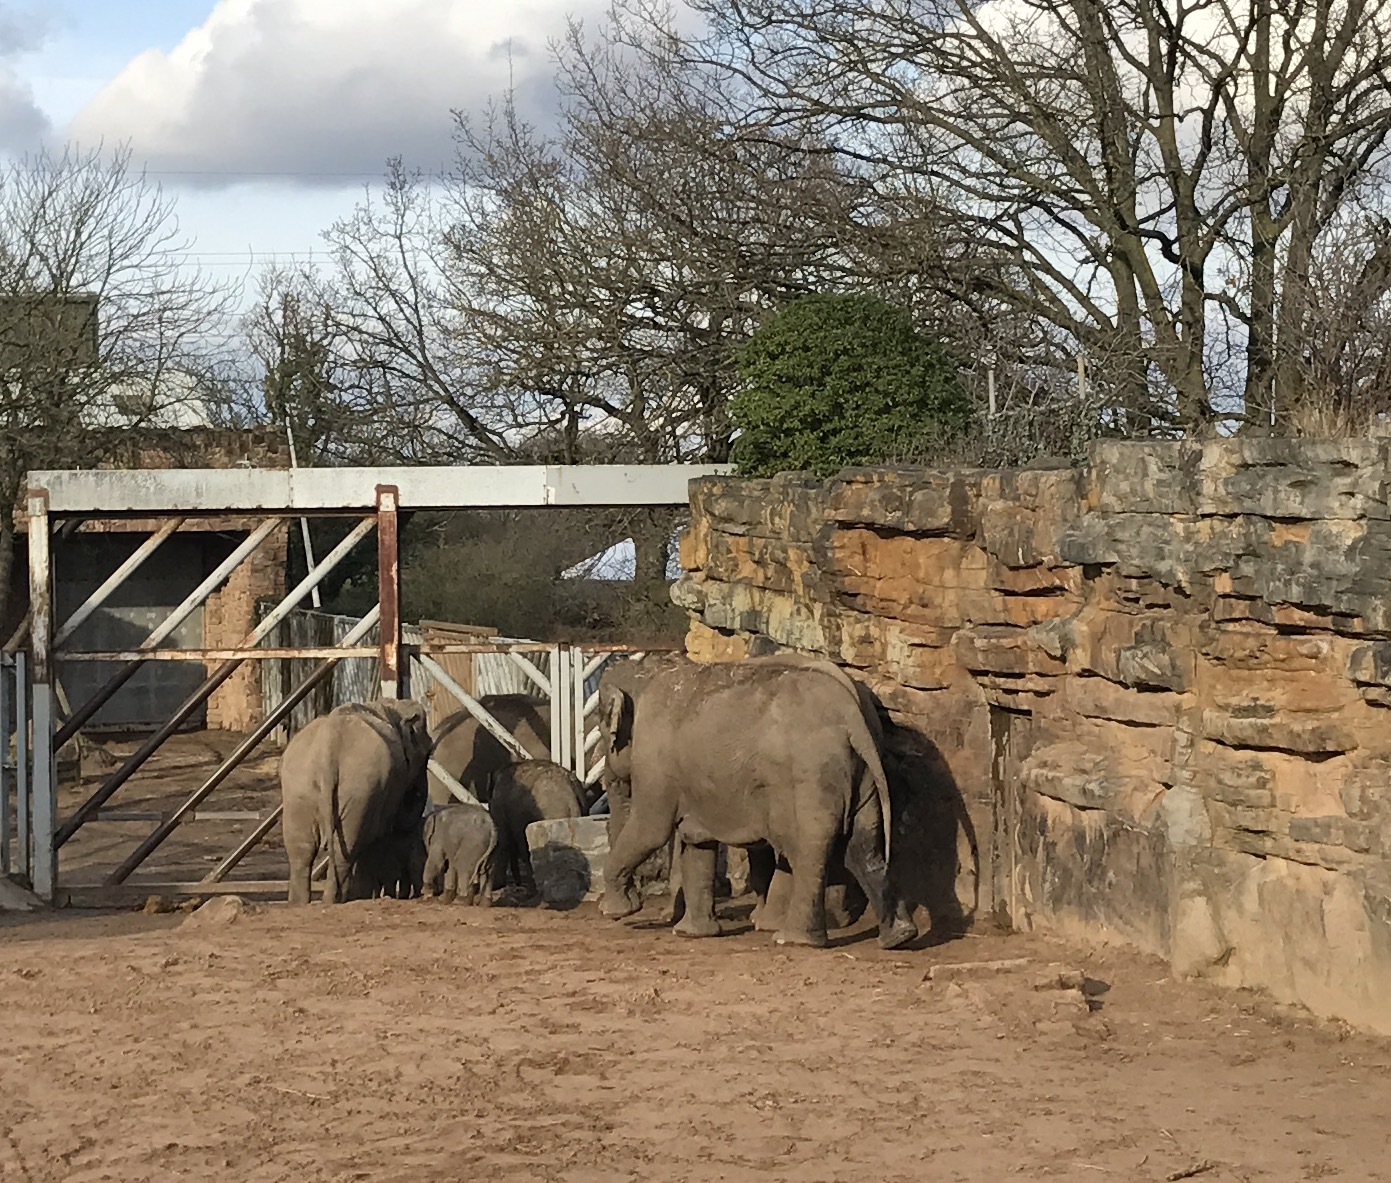 To see elephants in various sizes...